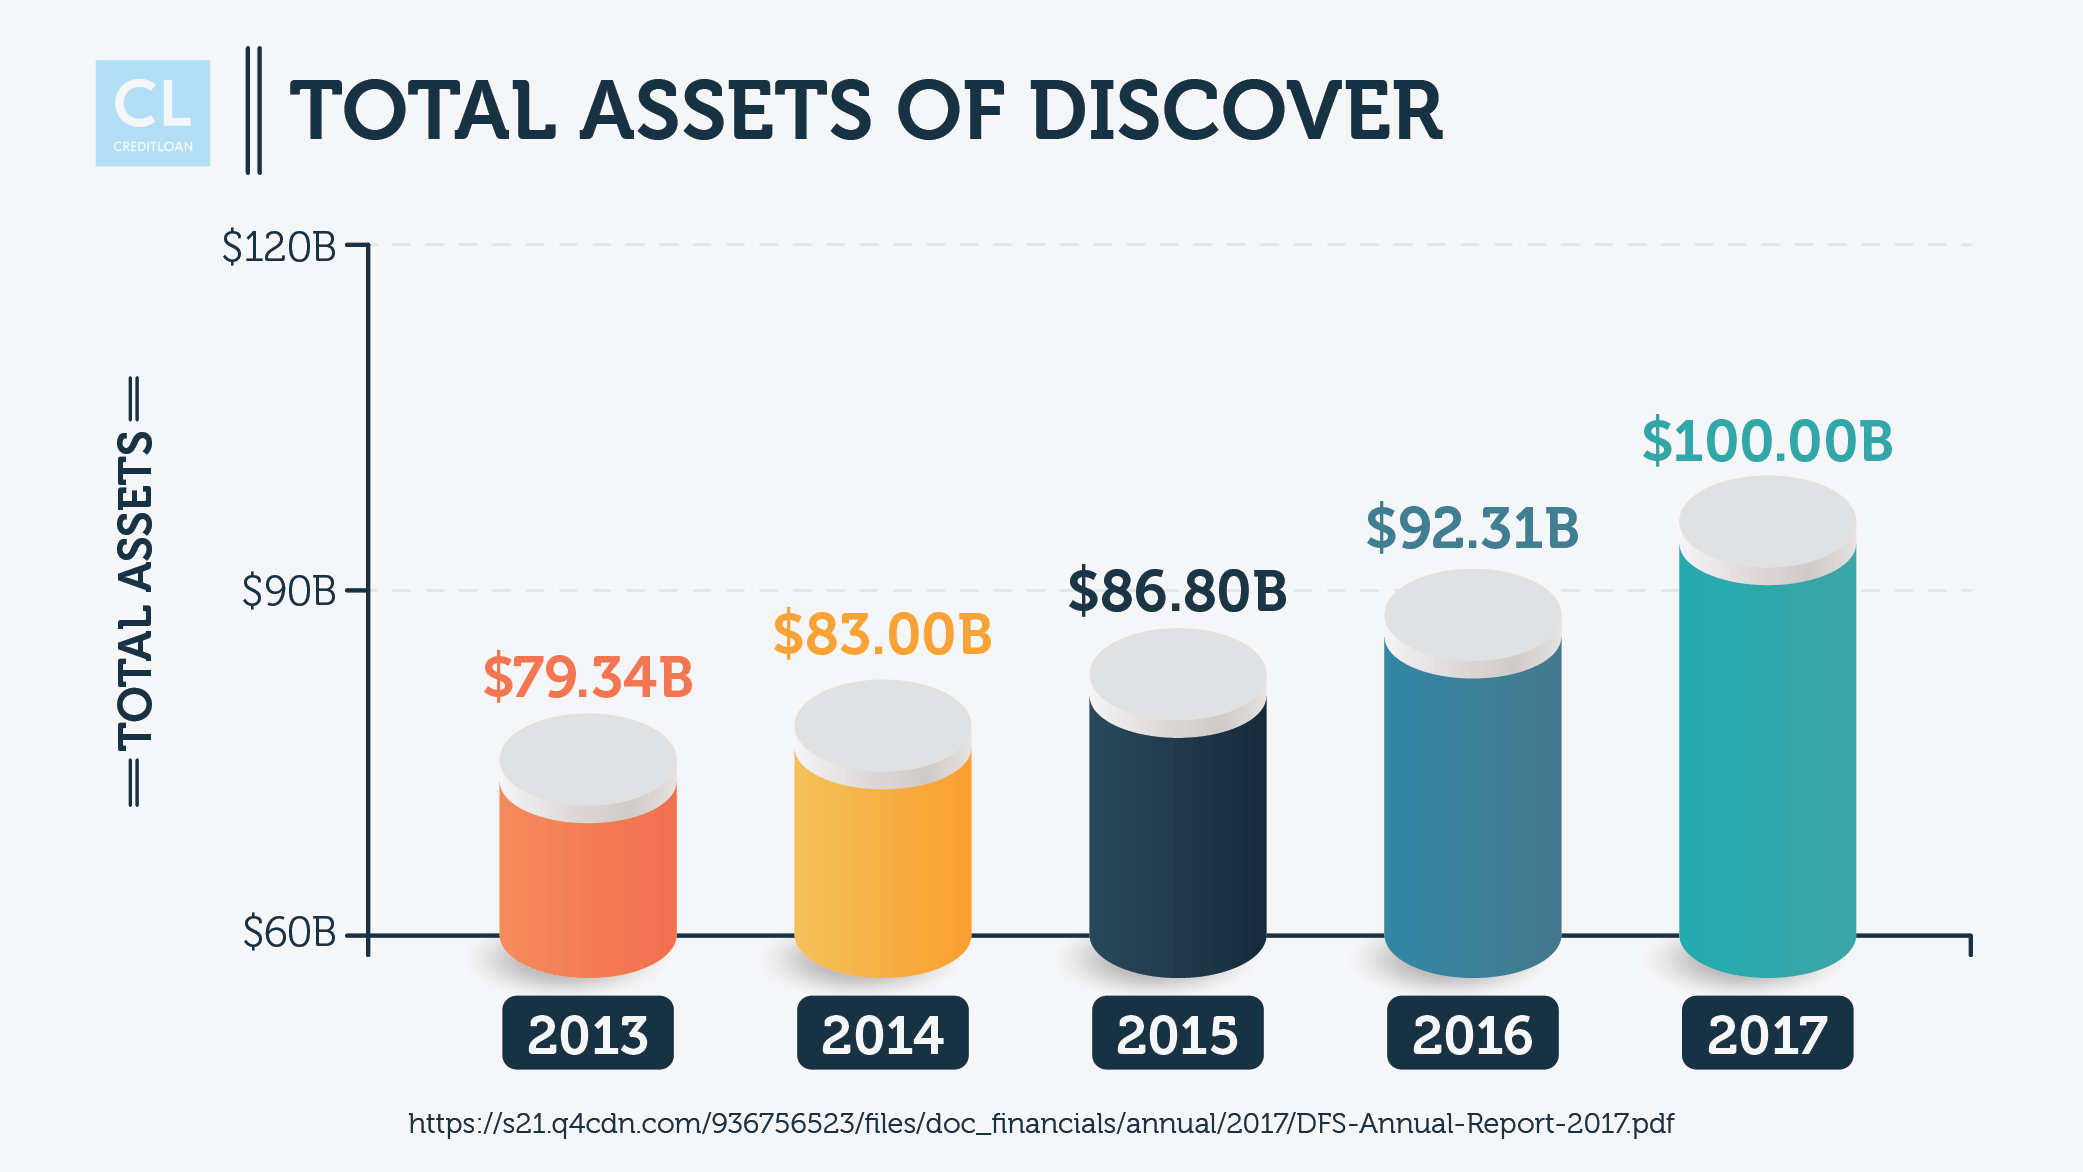 Total Assets of Discover from 2013-2017